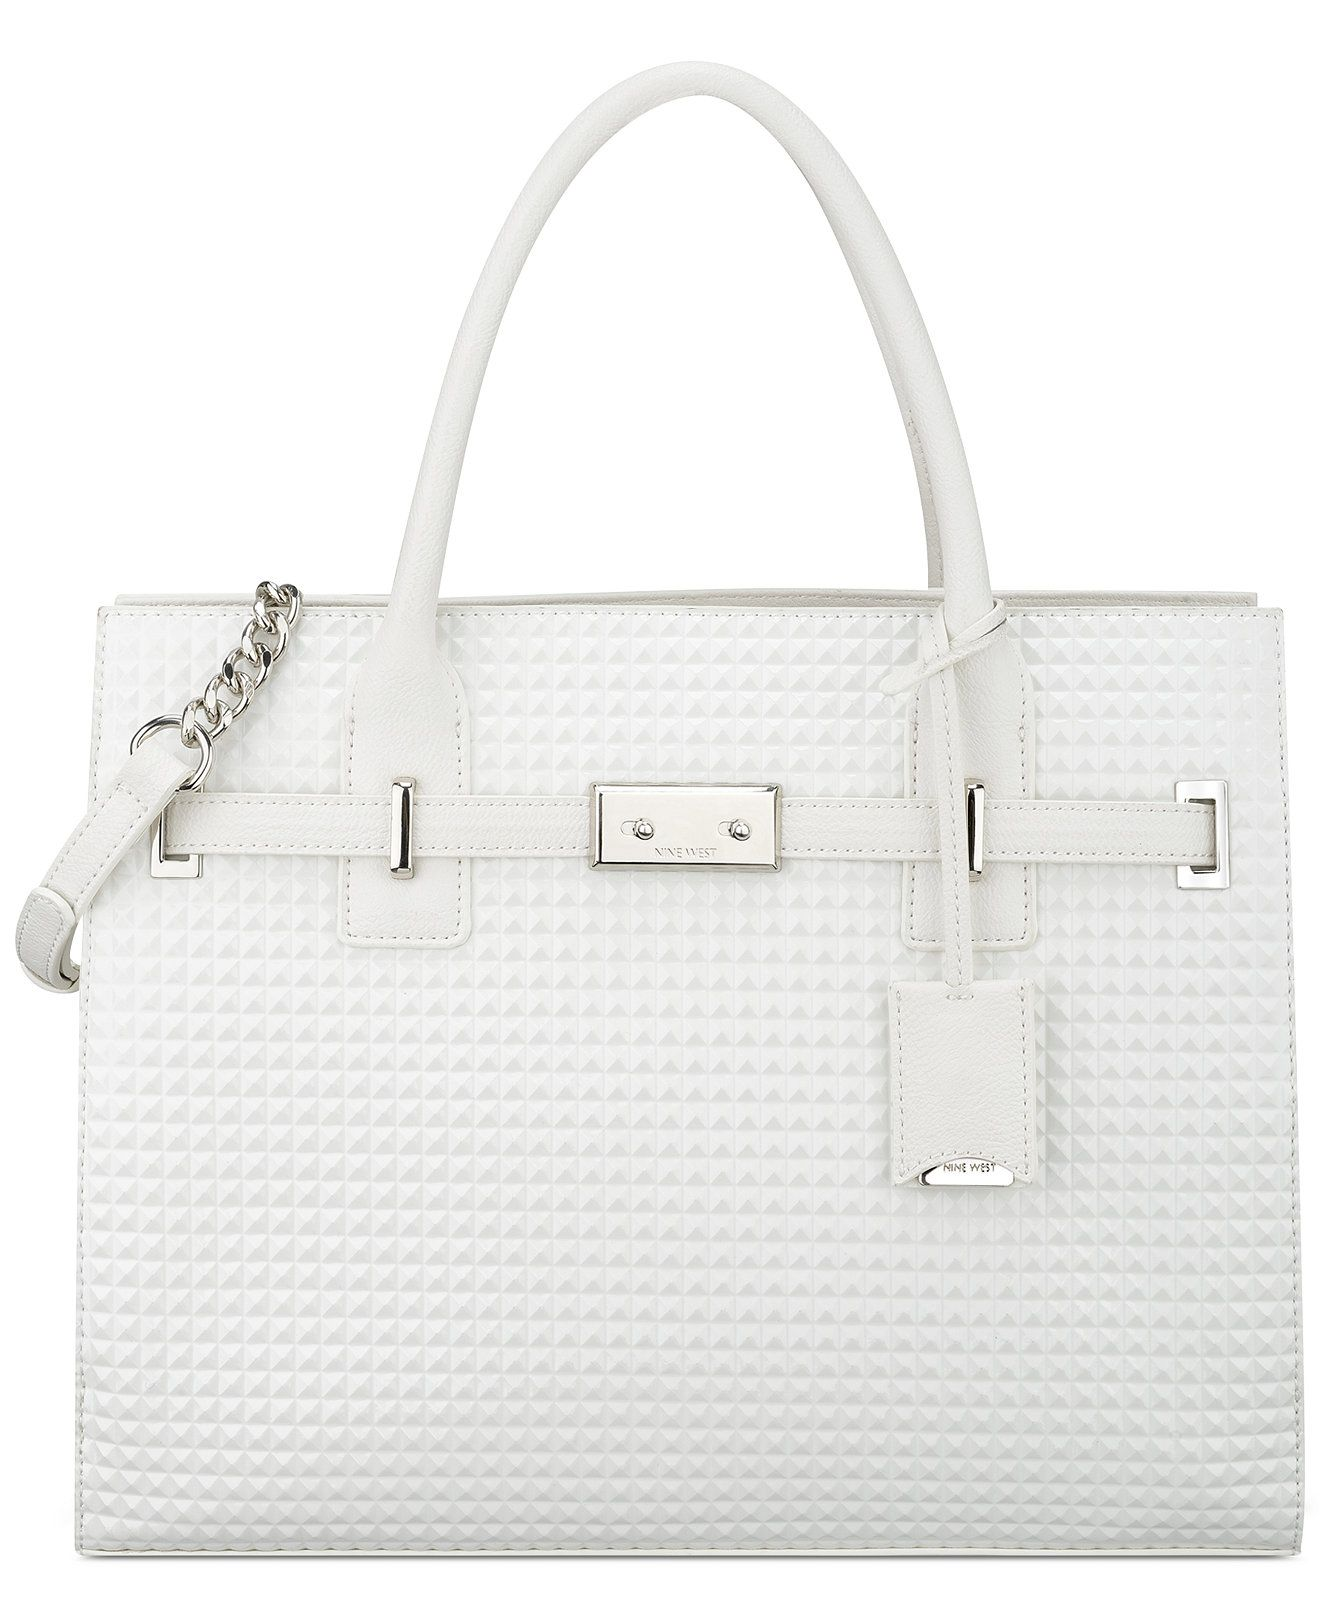 Nine West Internal Affairs Large Tote - Handbags   Accessories - Macy s d55c91bf88342